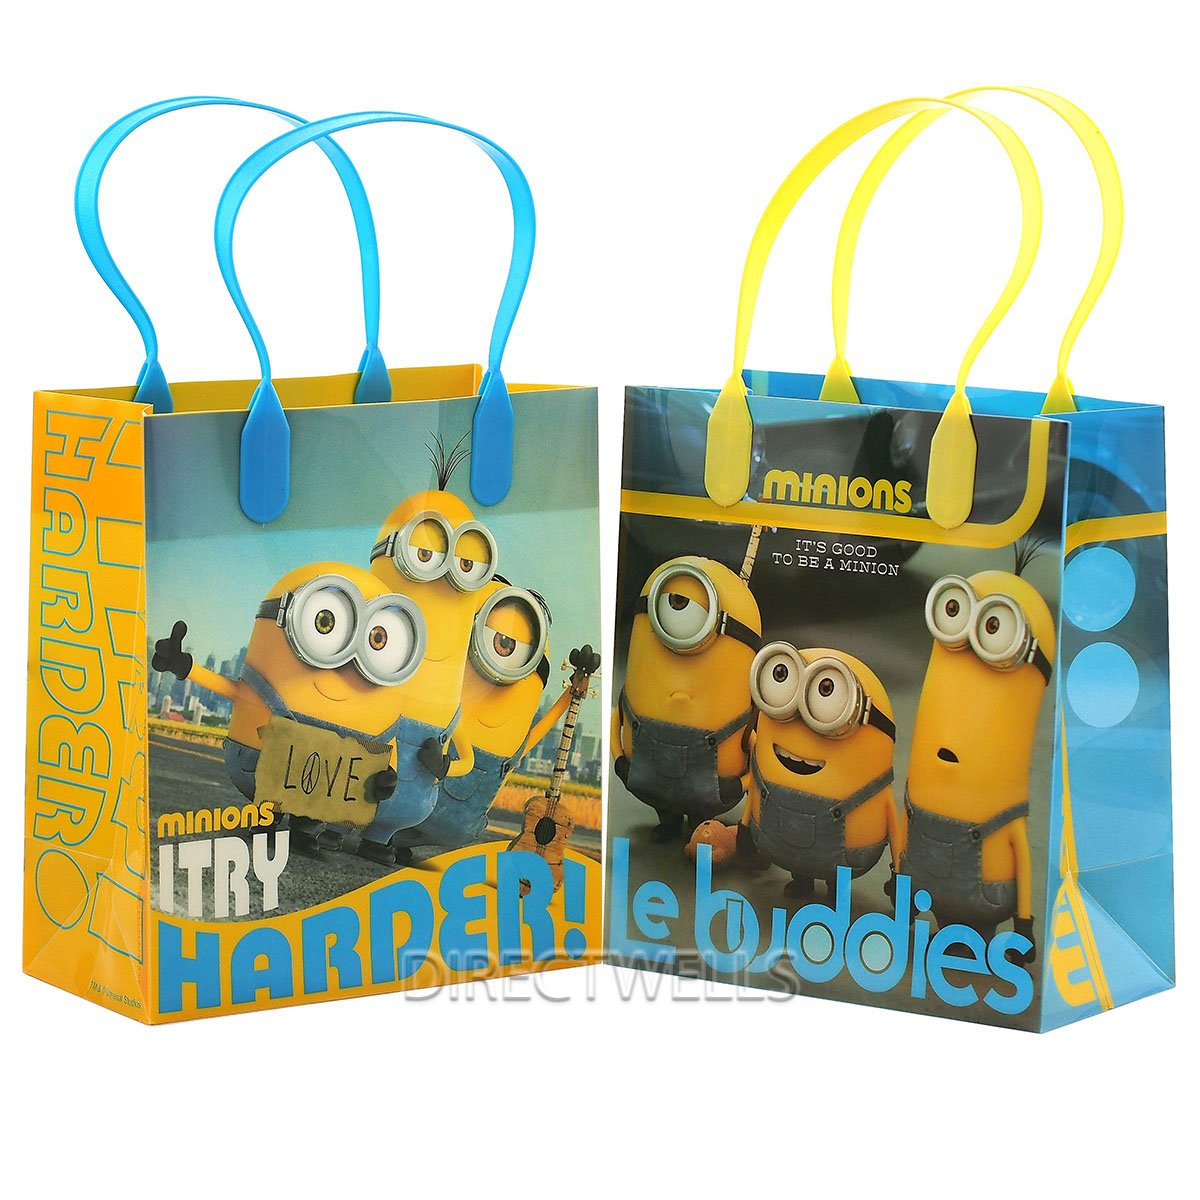 Universal Studios Despicable Me Minions Le Buddies Premium Quality Party Favor Goodie Small Gift Bags 12 by Universal Studios (Image #1)